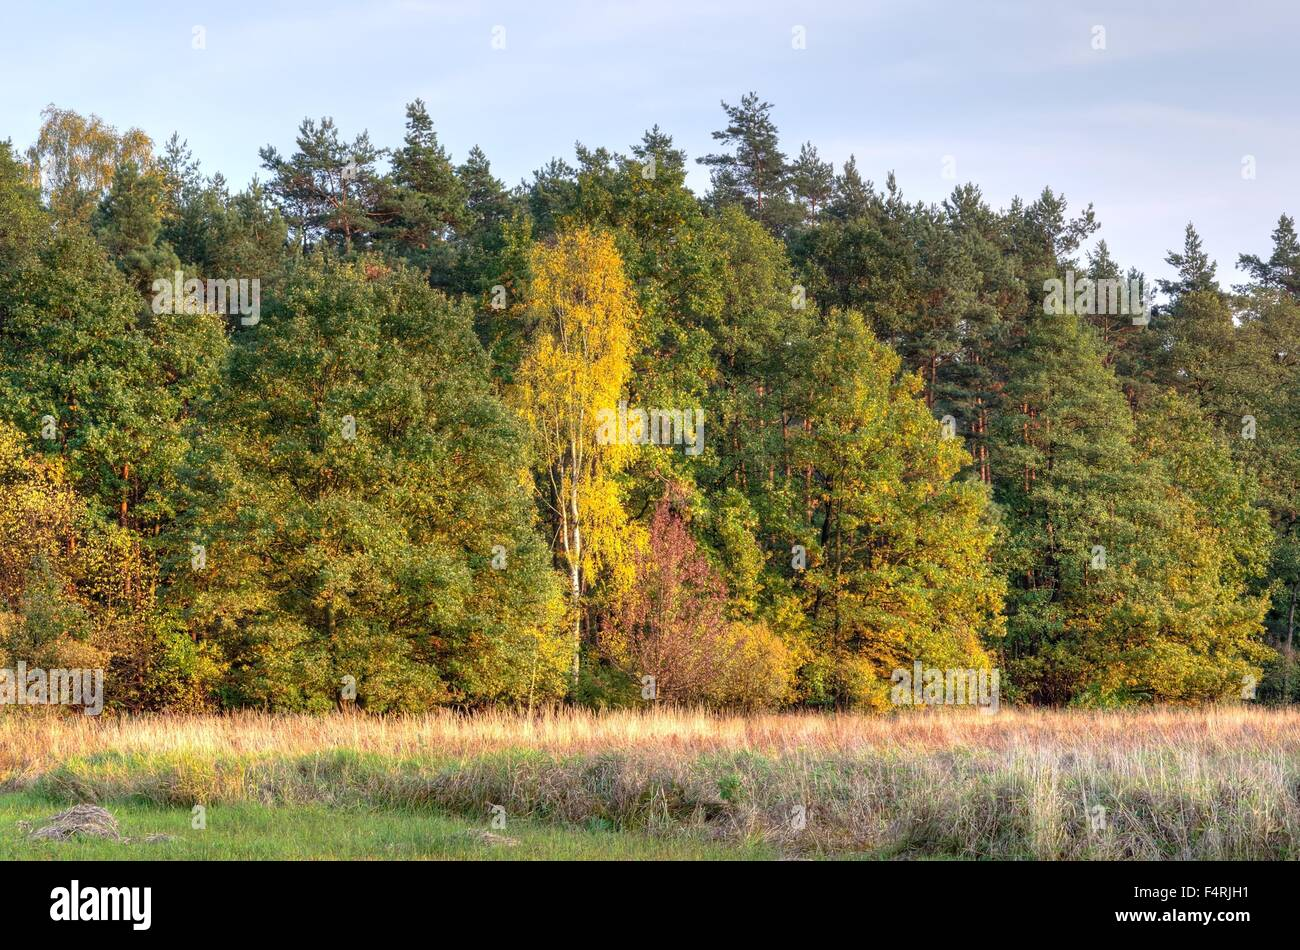 Autumn landscape. Tree with colorful autumn leaves in the forest. - Stock Image